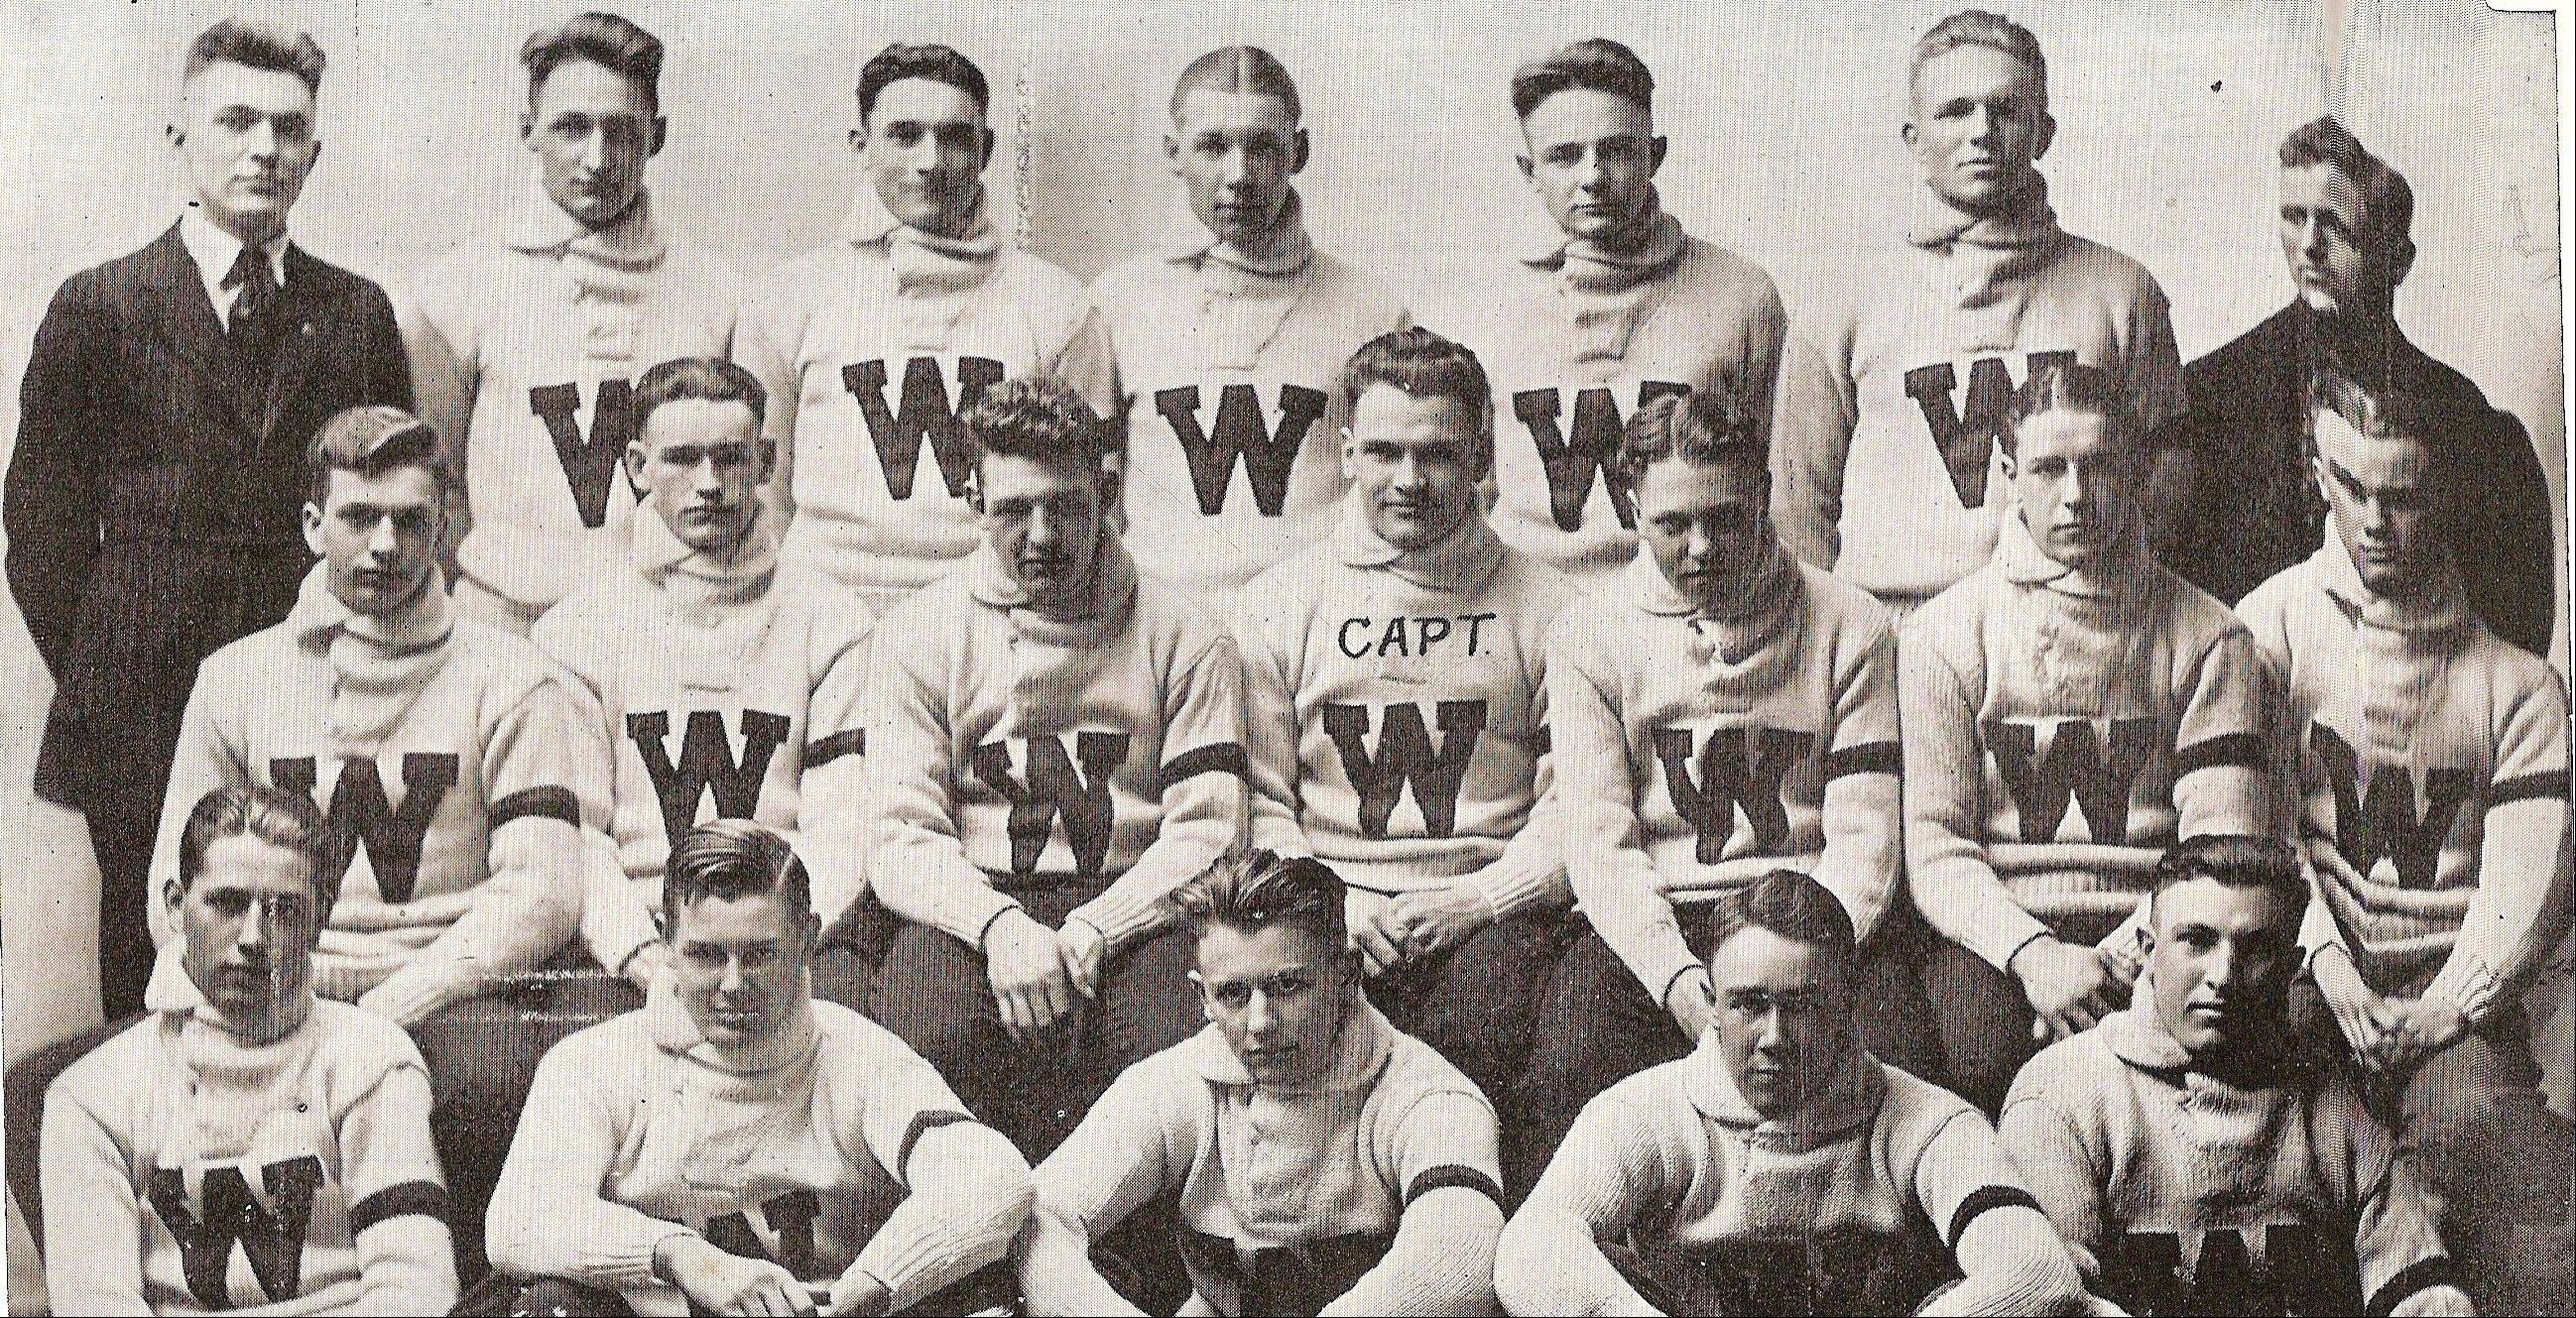 The football team at Wheaton High School in 1919. Grange is seated just left of the captain, third from the left in the middle row.